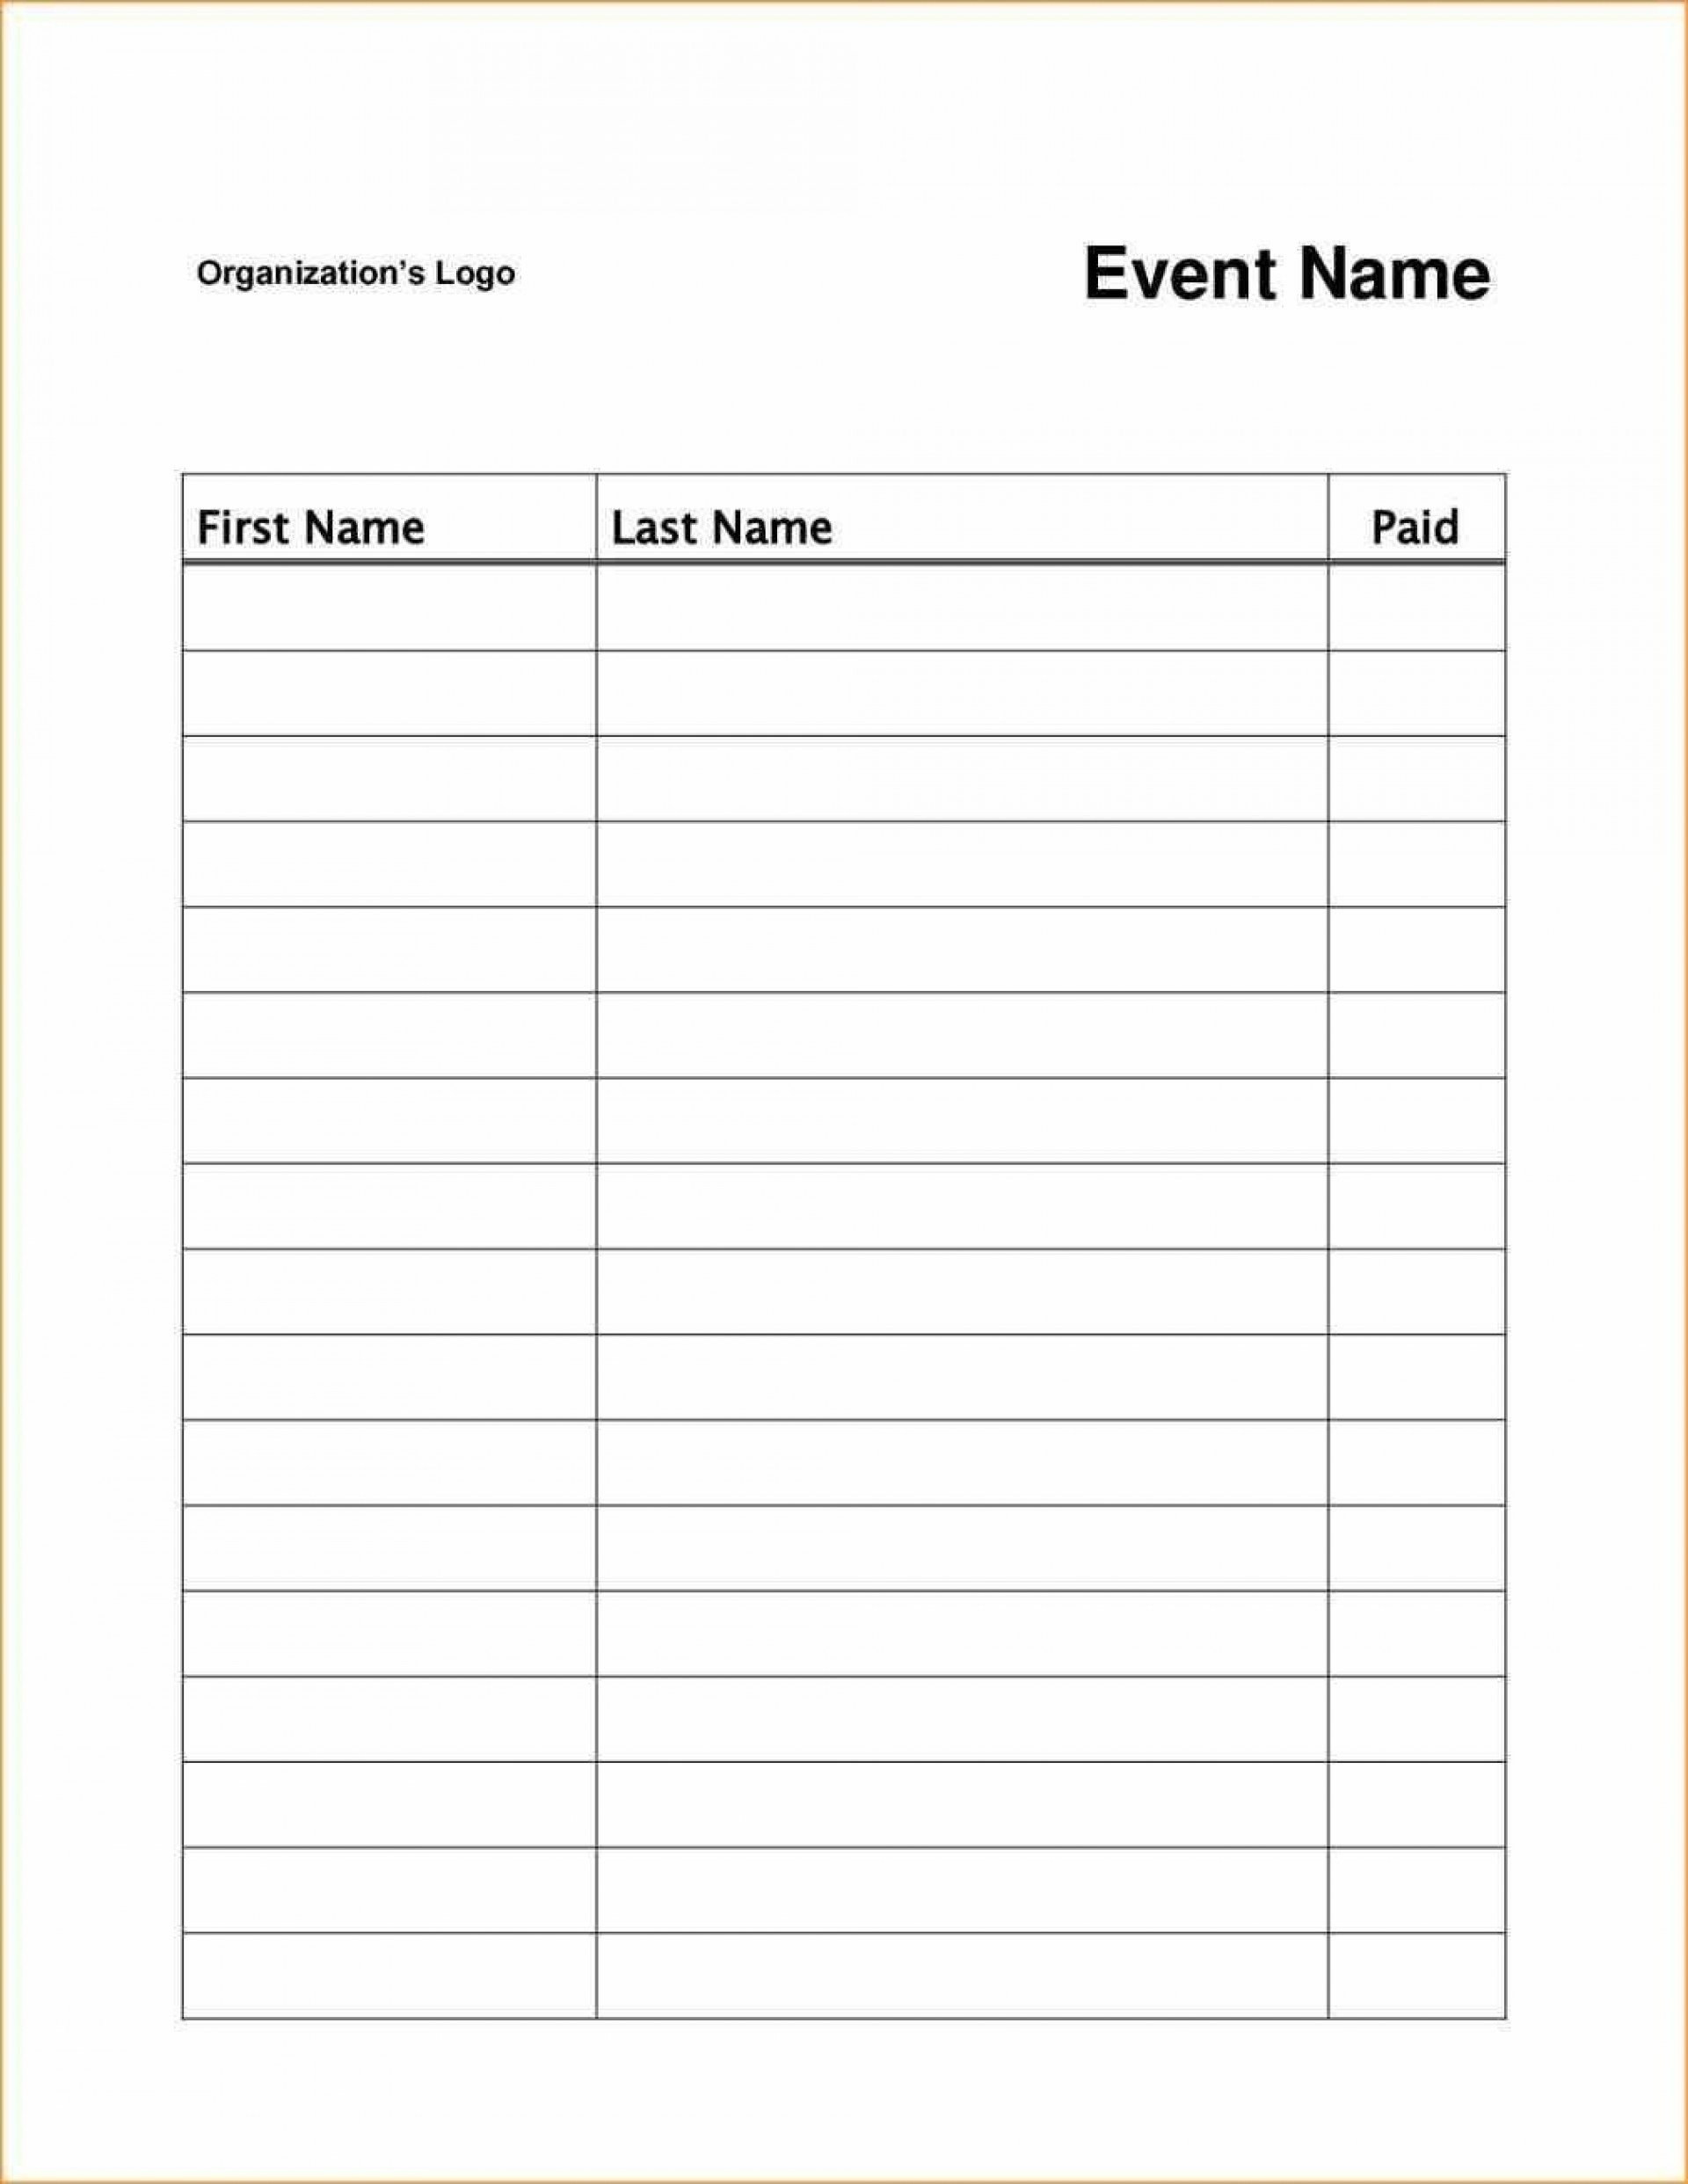 006 Stupendou Free Sign Up Sheet Template Picture  Printable Potluck Word Blank Google Doc1920